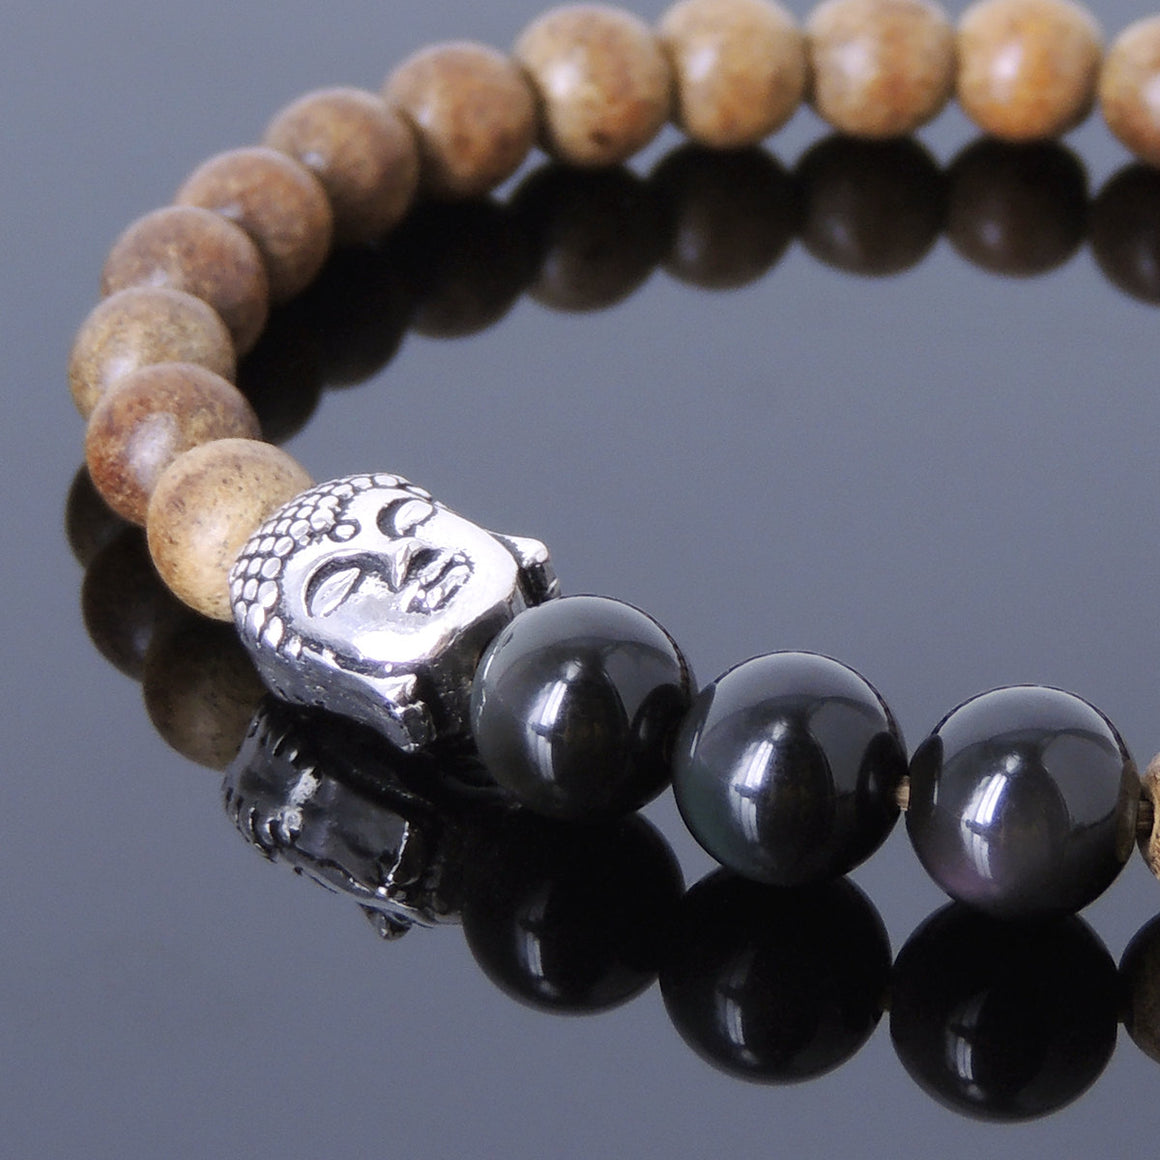 Agarwood & Rainbow Black Obsidian Meditation Bracelet with S925 Sterling Silver Guanyin Buddha Bead - Handmade by Gem & Silver BR439